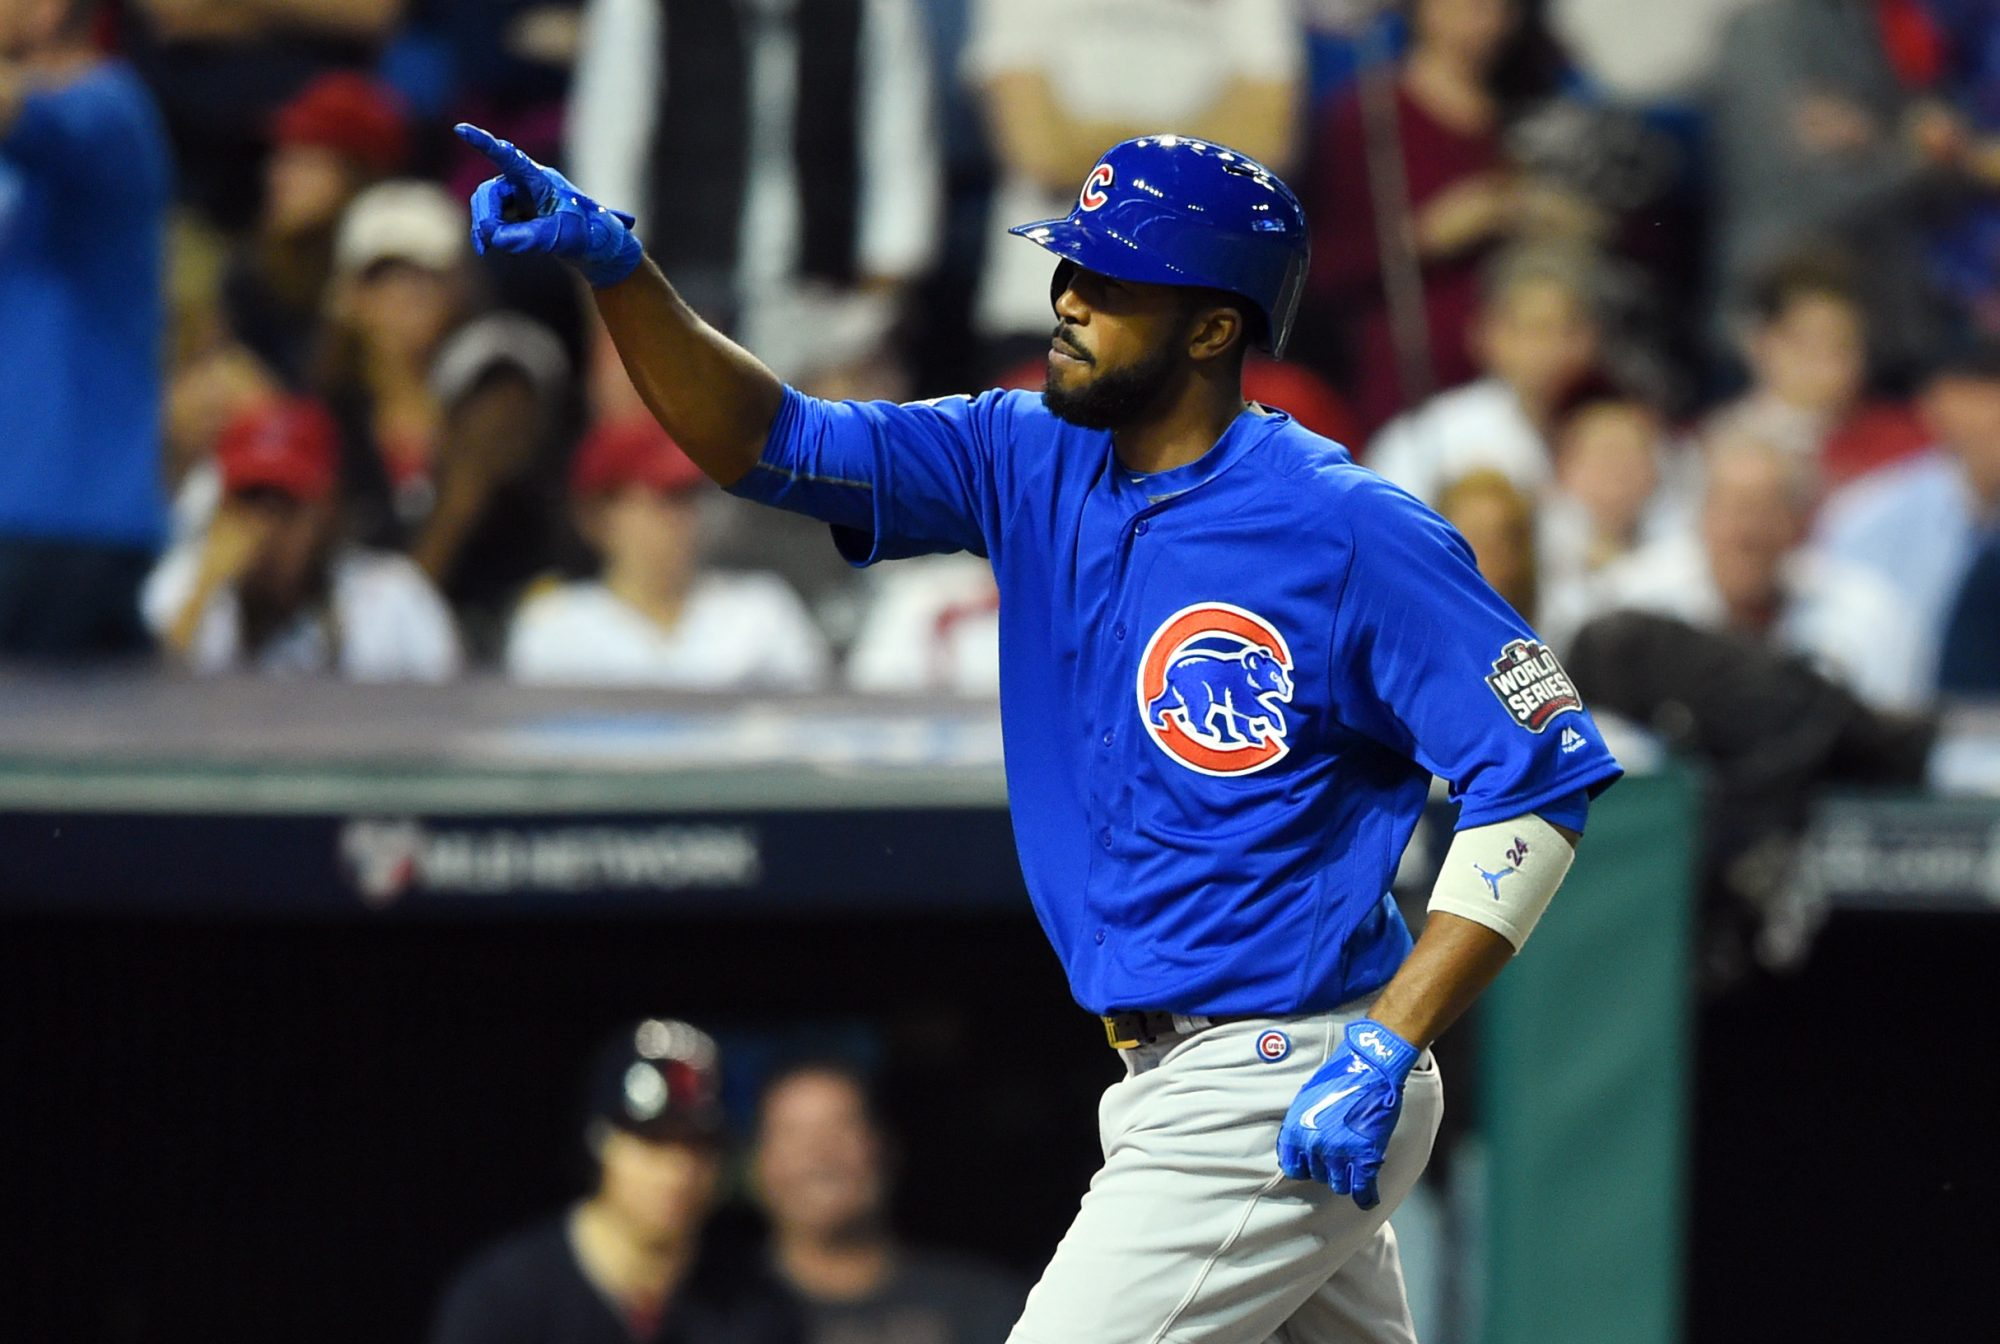 Fantasy Baseball 2017: Stock up, stock down in terms of MLB free agent signings